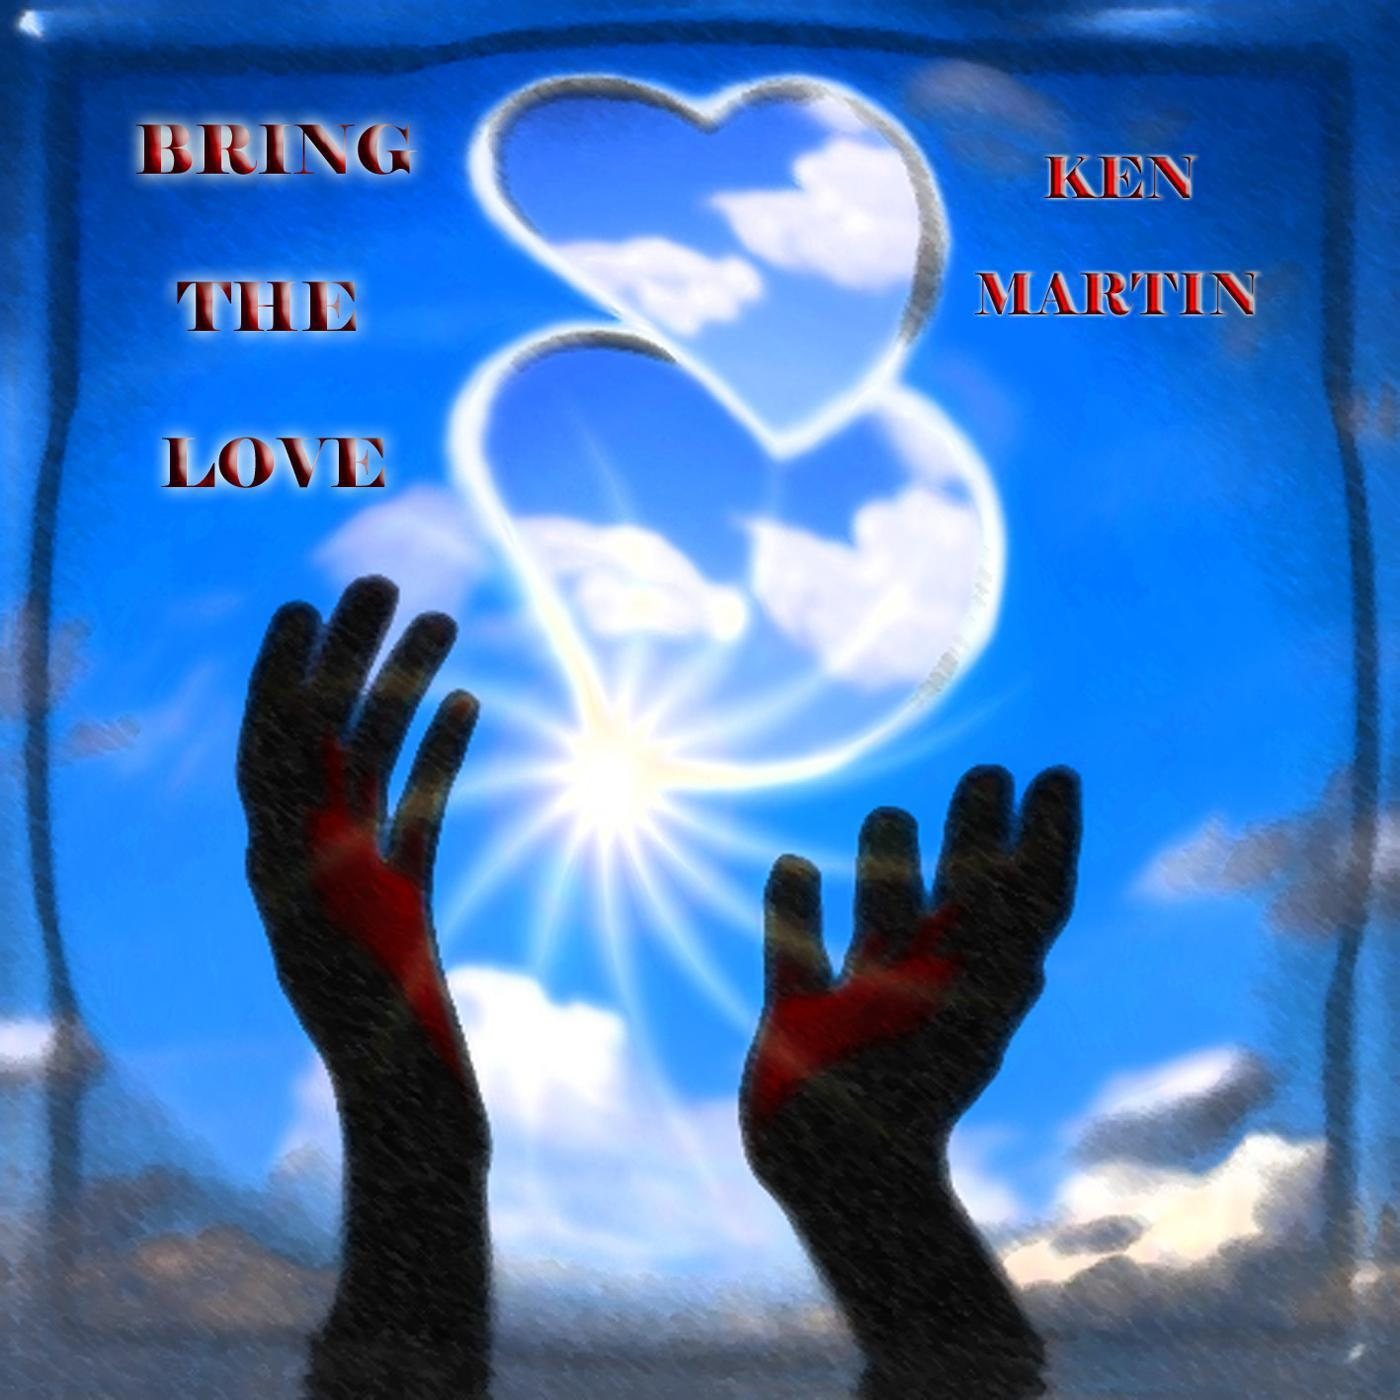 Bring The Love - Single